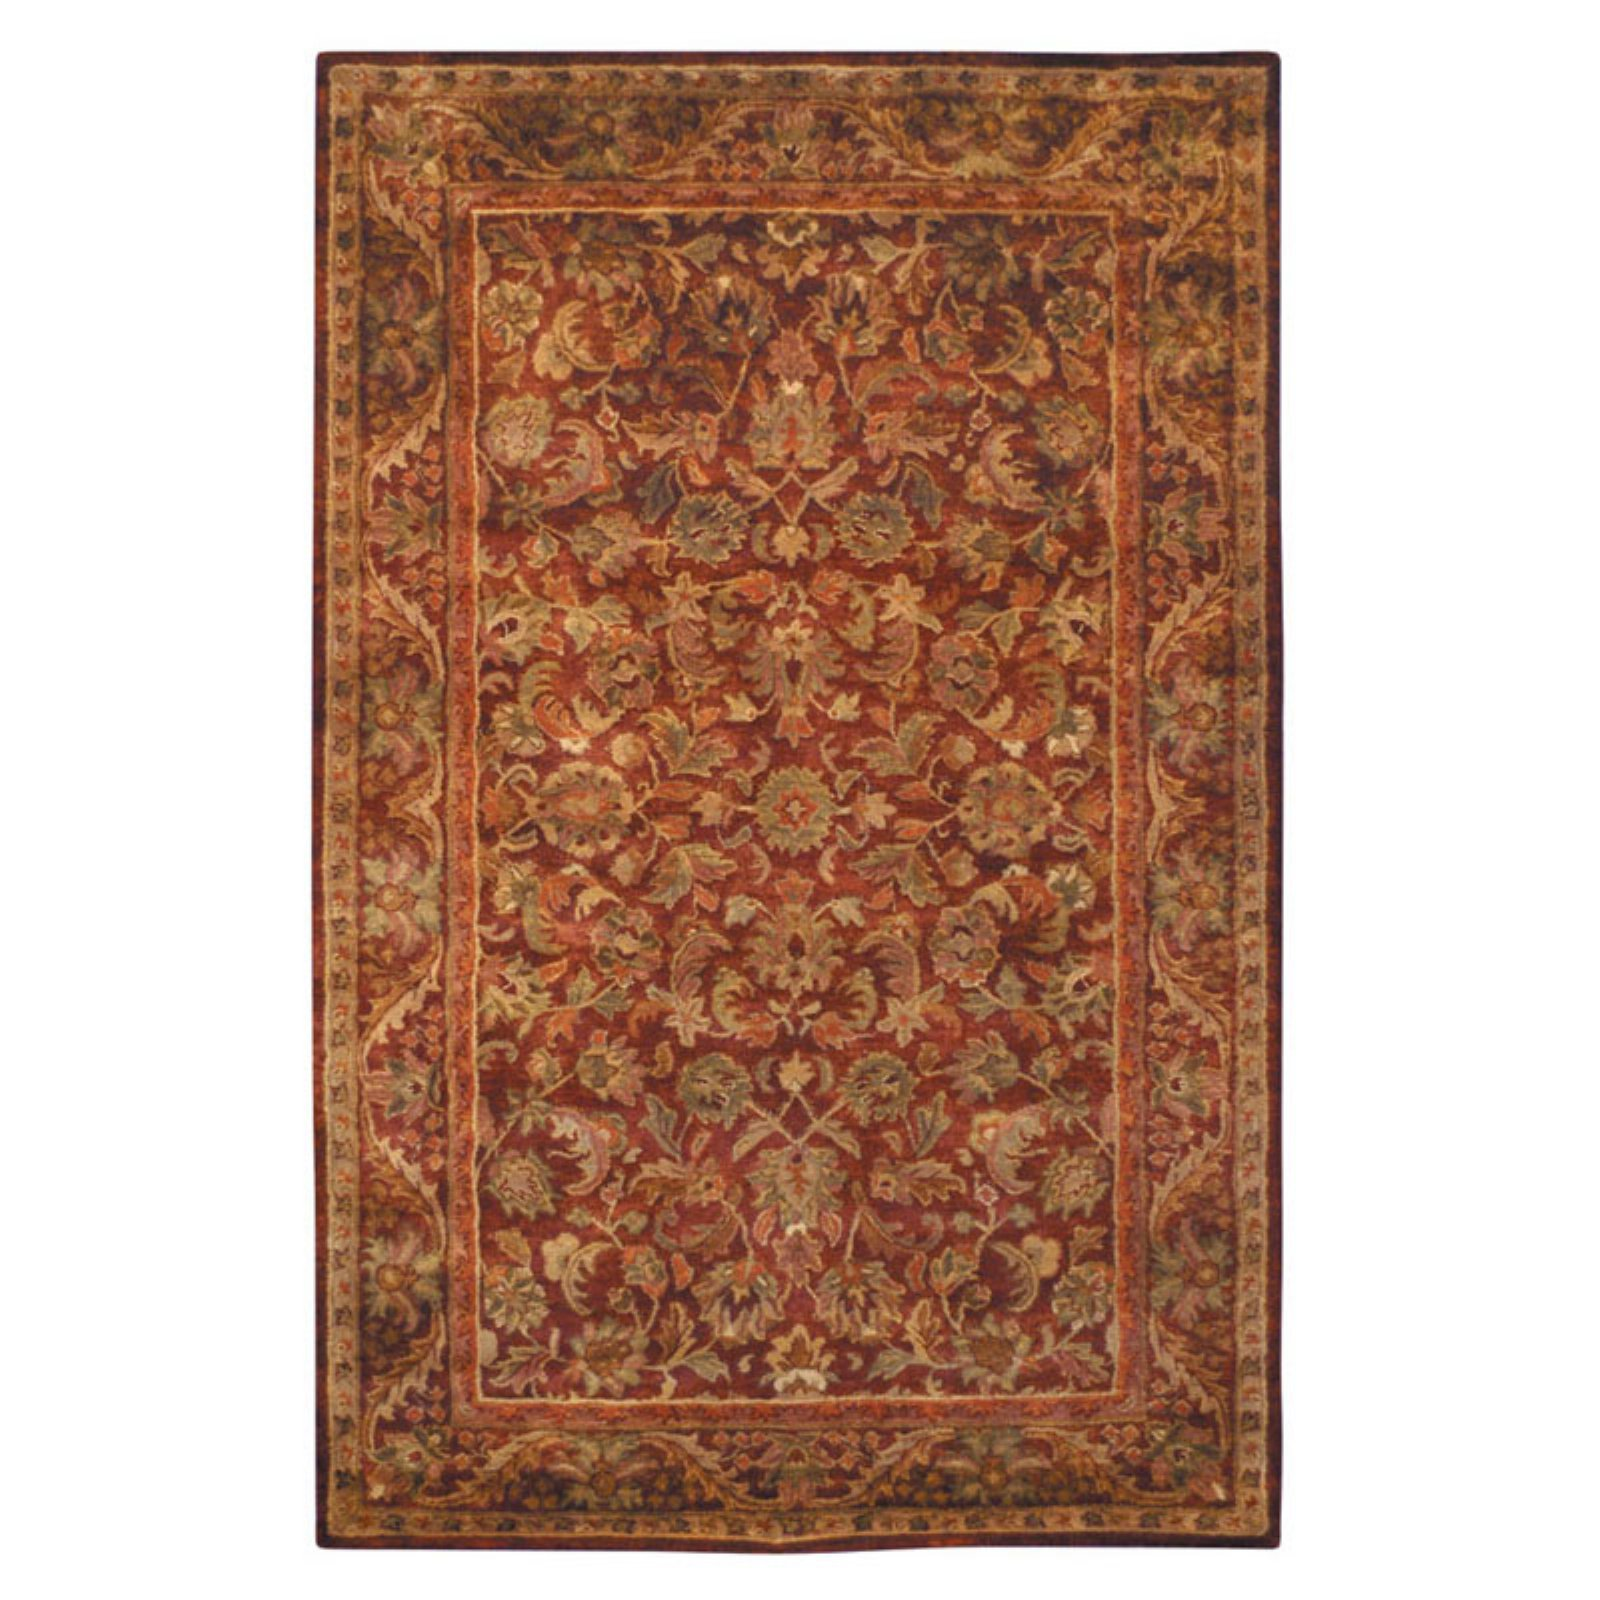 Safavieh Antiquity Carmella Floral Bordered Area Rug Or Runner